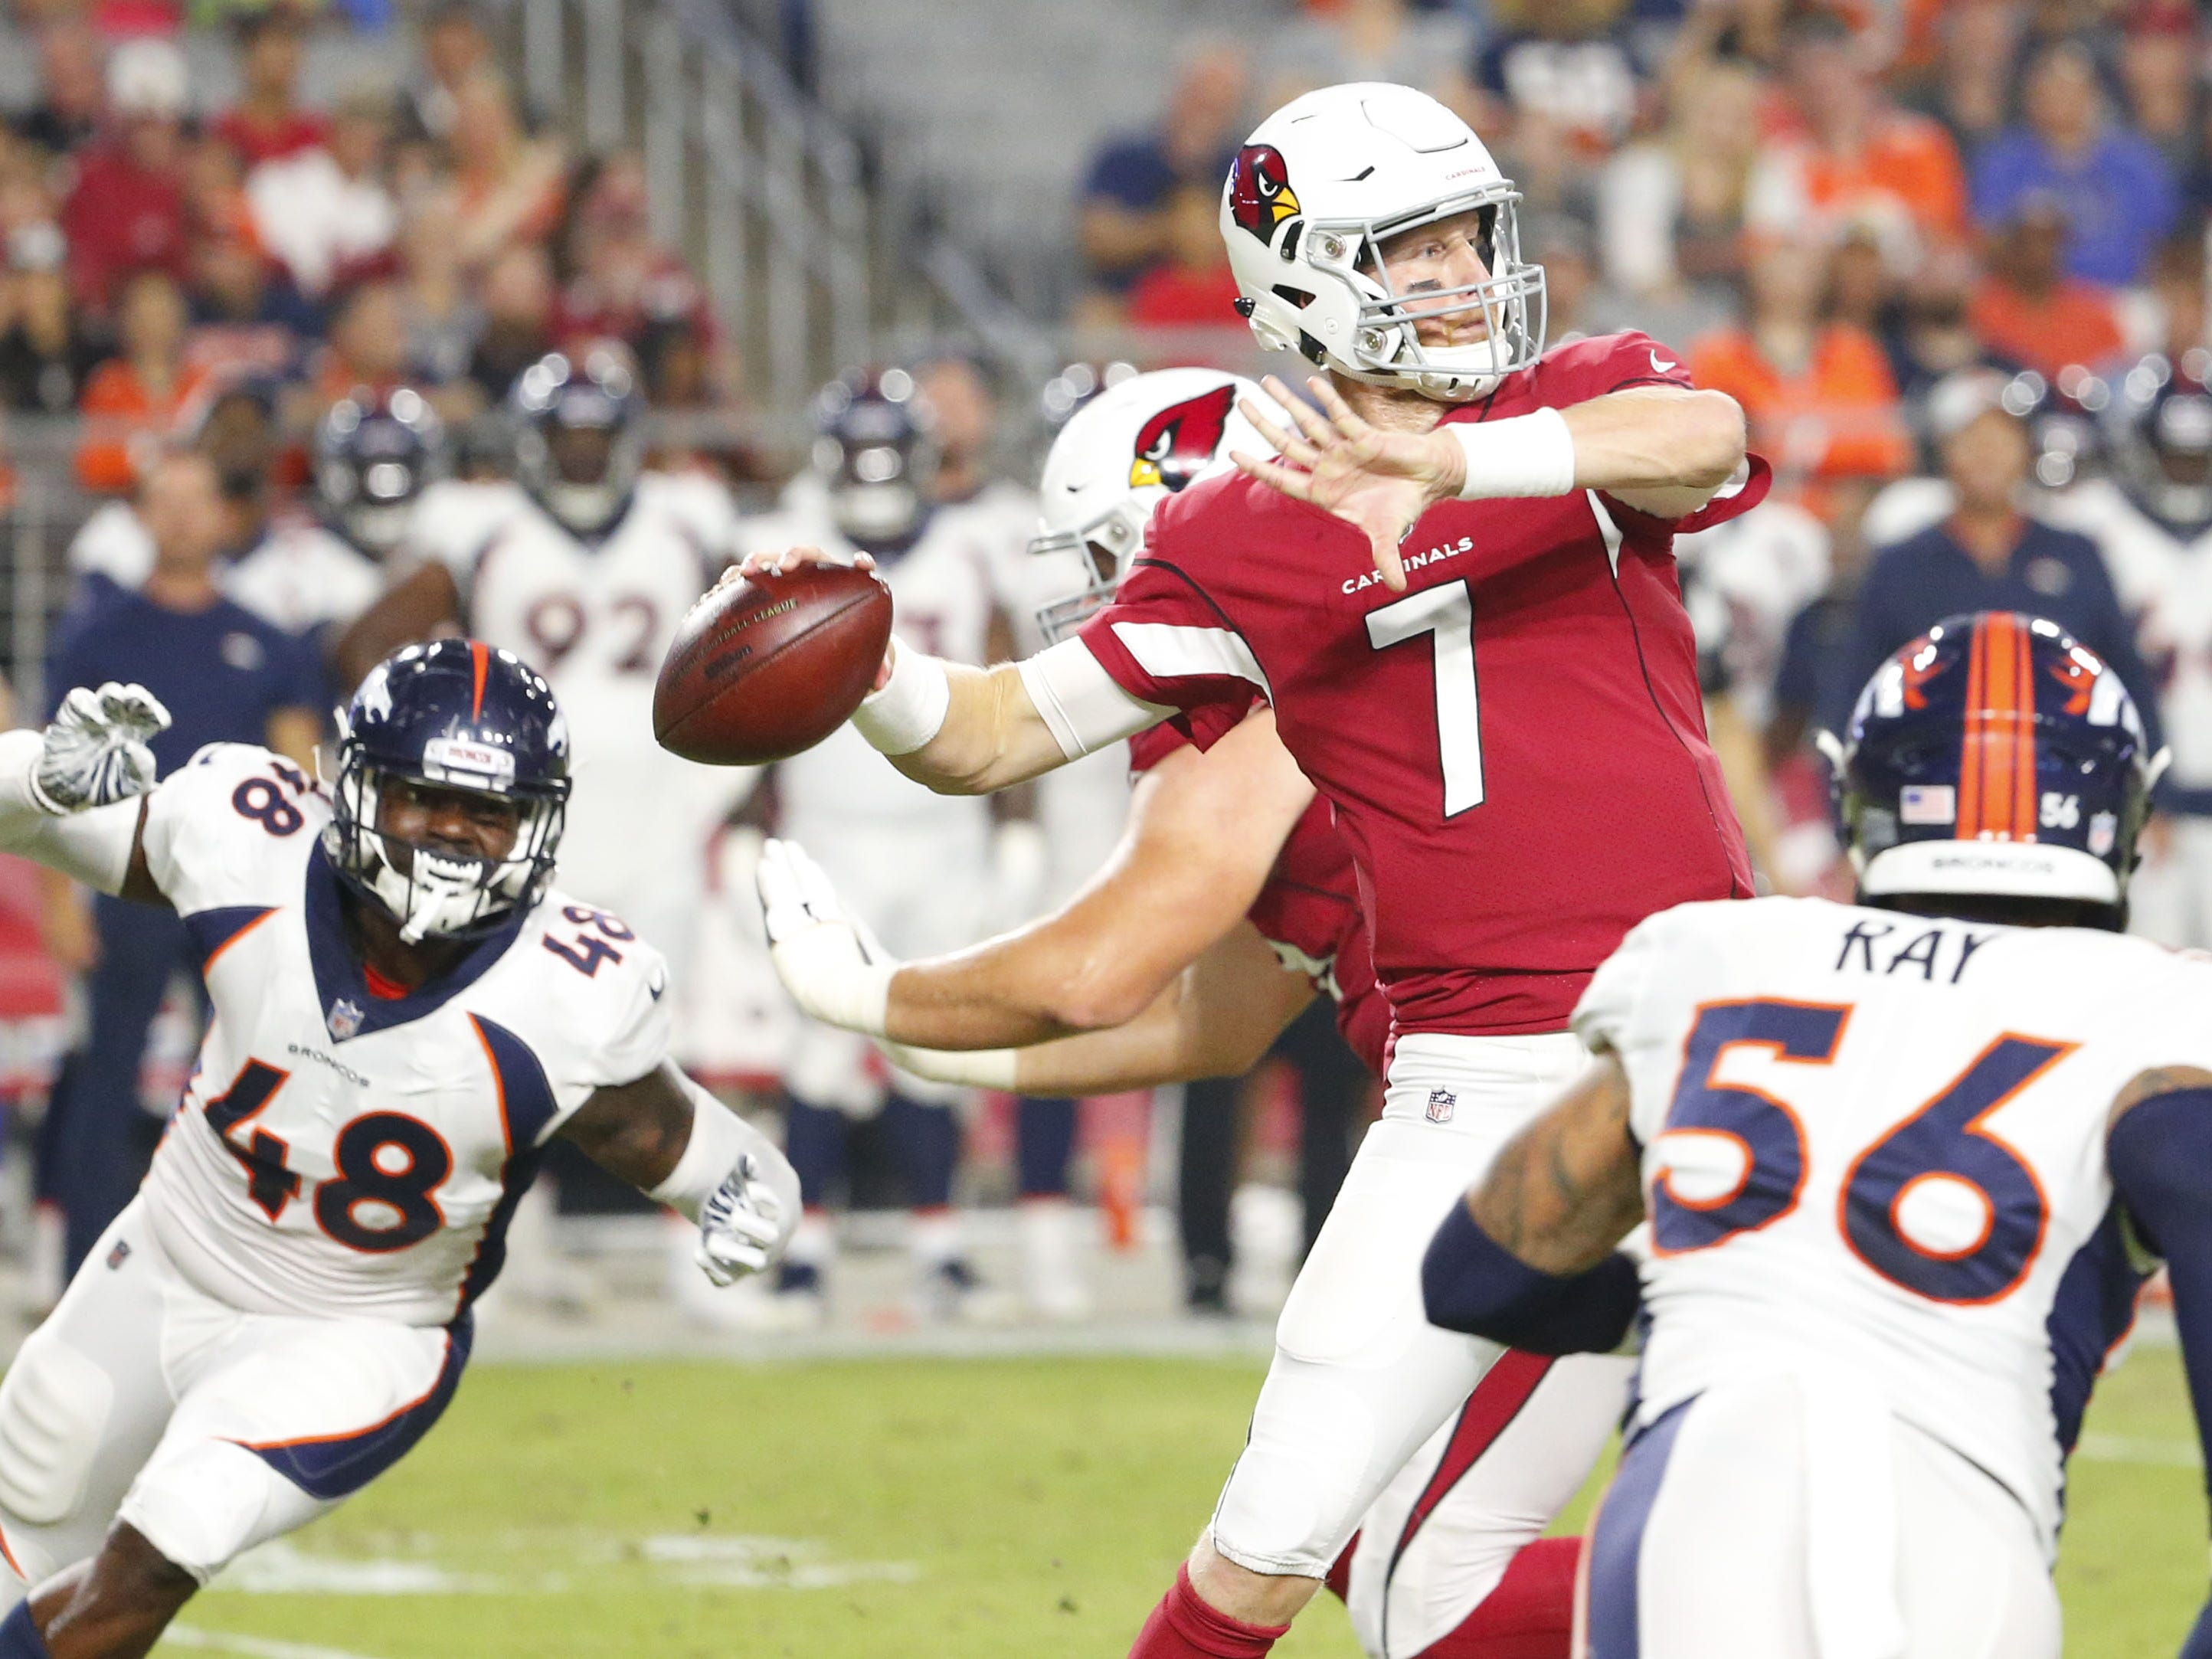 Arizona Cardinals quarterback Mike Glennon (7) passes the ball during a NFL game against the Denver Broncos at the University of Phoenix Stadium in Glendale on August 30, 2018.